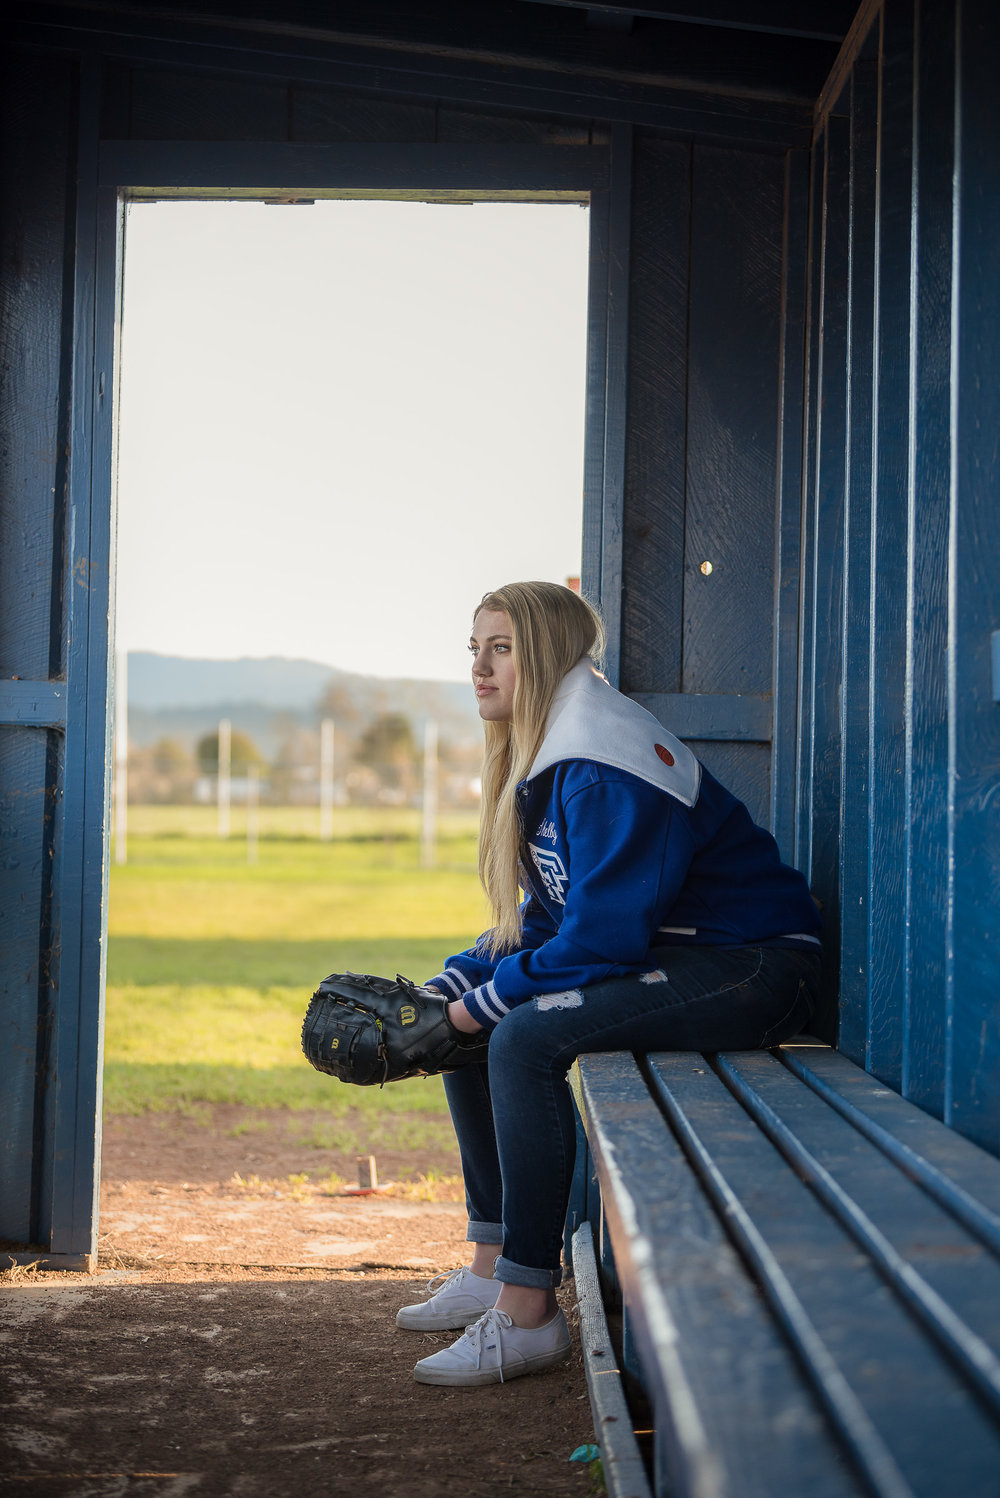 HumboldtCountySeniorPhotographer-Shelby-FortunaHigh-Softball-16.JPG